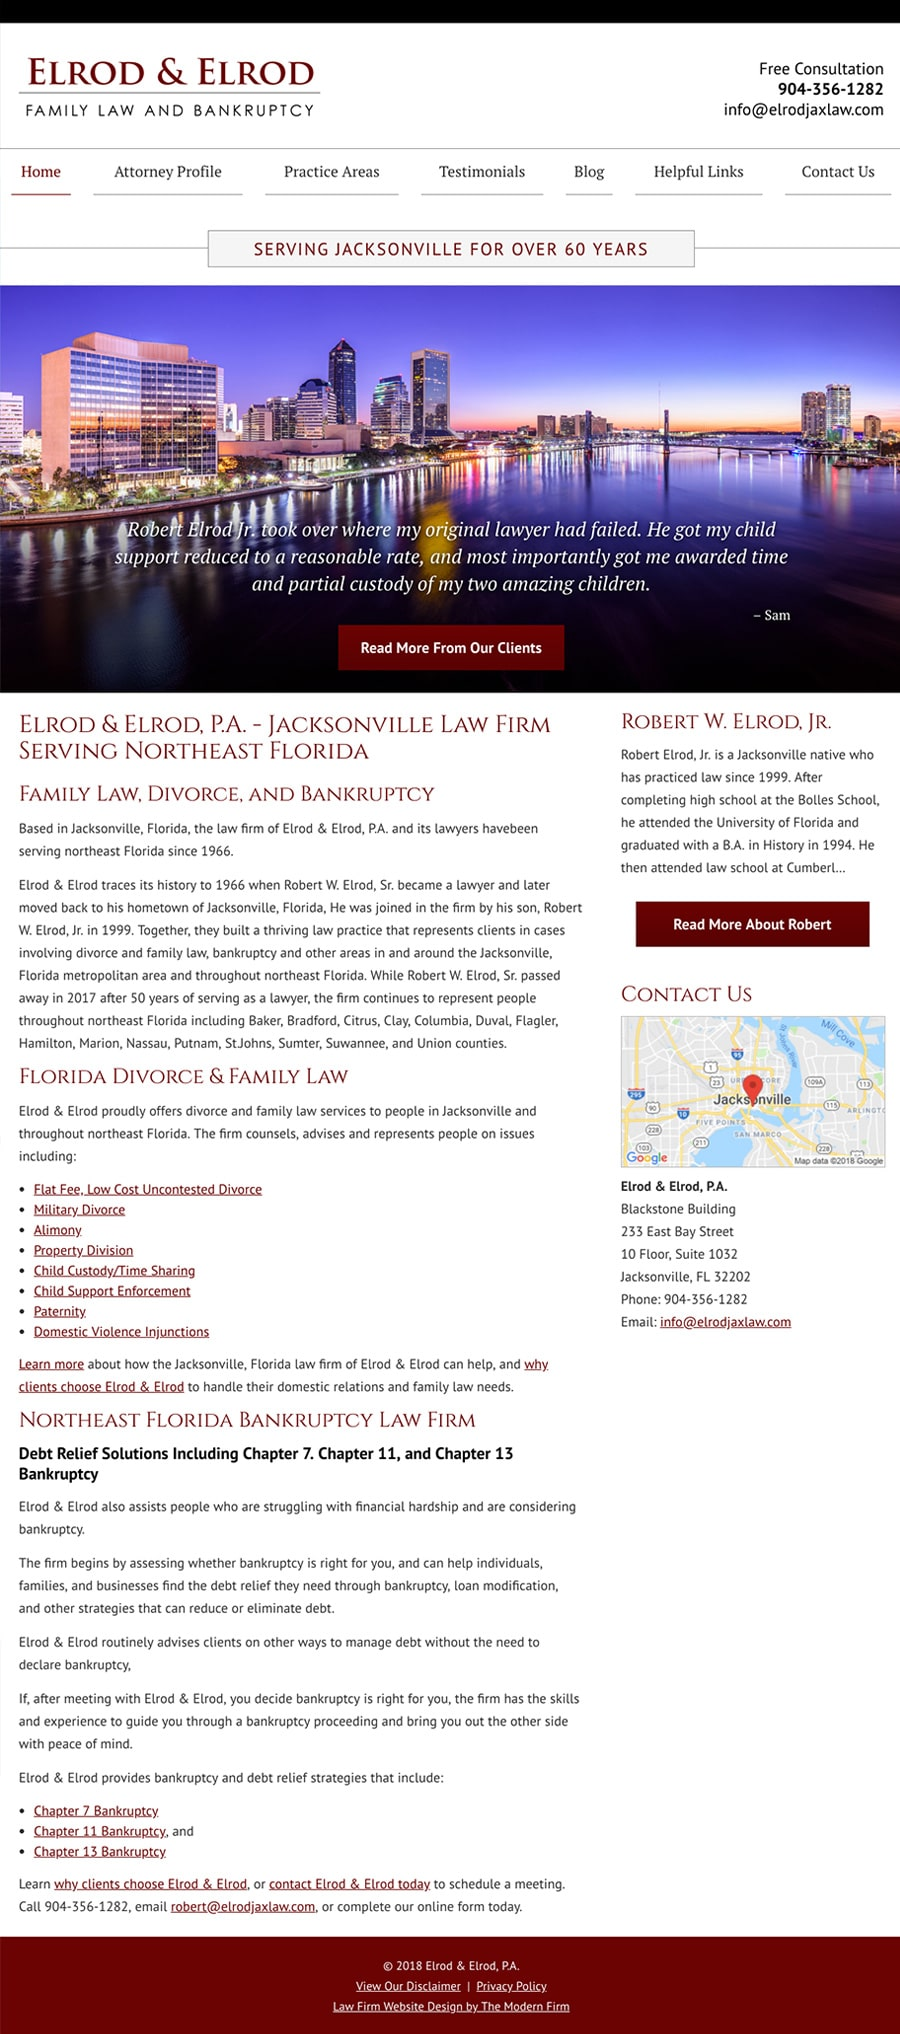 Law Firm Website for Elrod & Elrod, P.A.